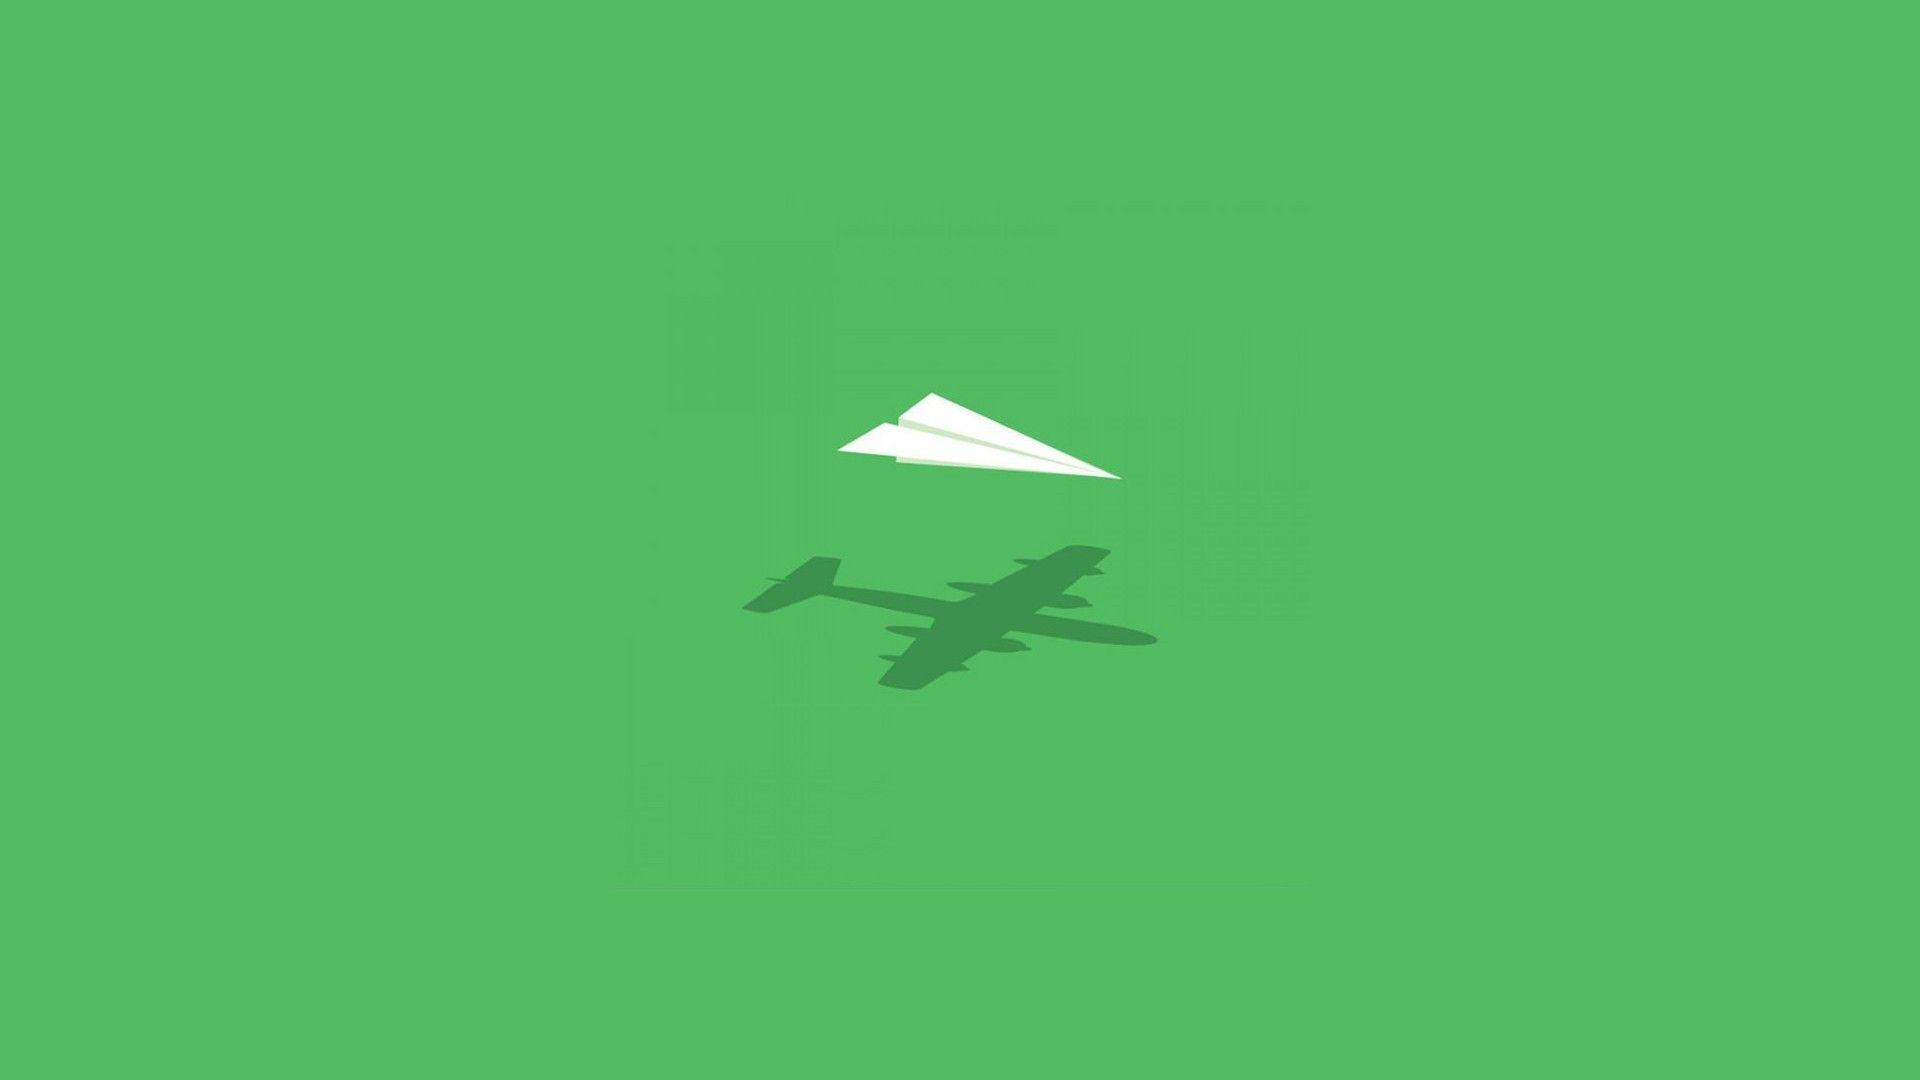 Paper Airplane Wallpapers